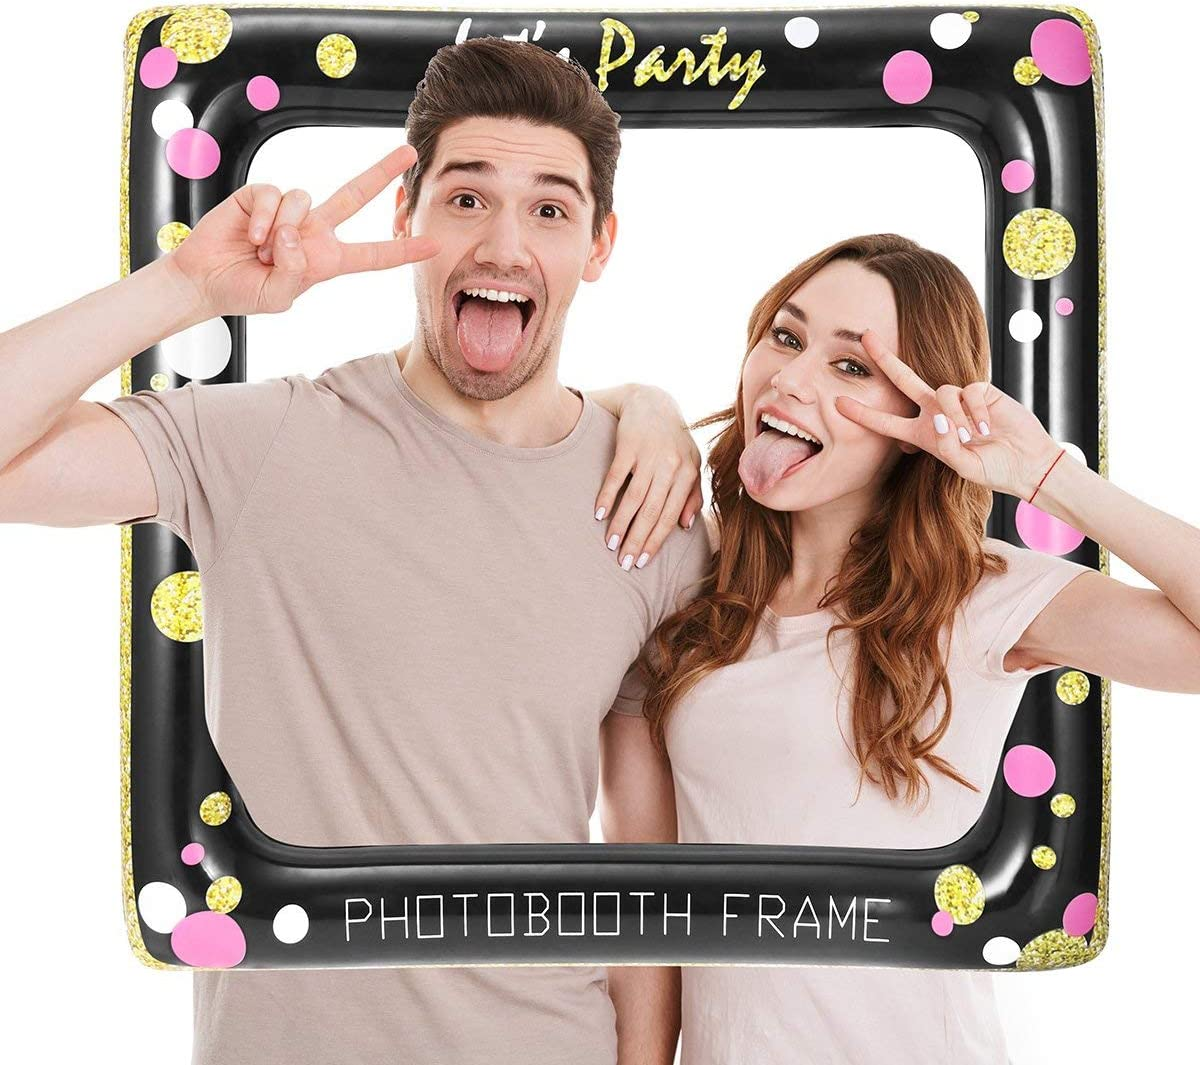 Inflatable Selfie Picture Frame Blow Up Photo booth Party Deco Prop Accessory